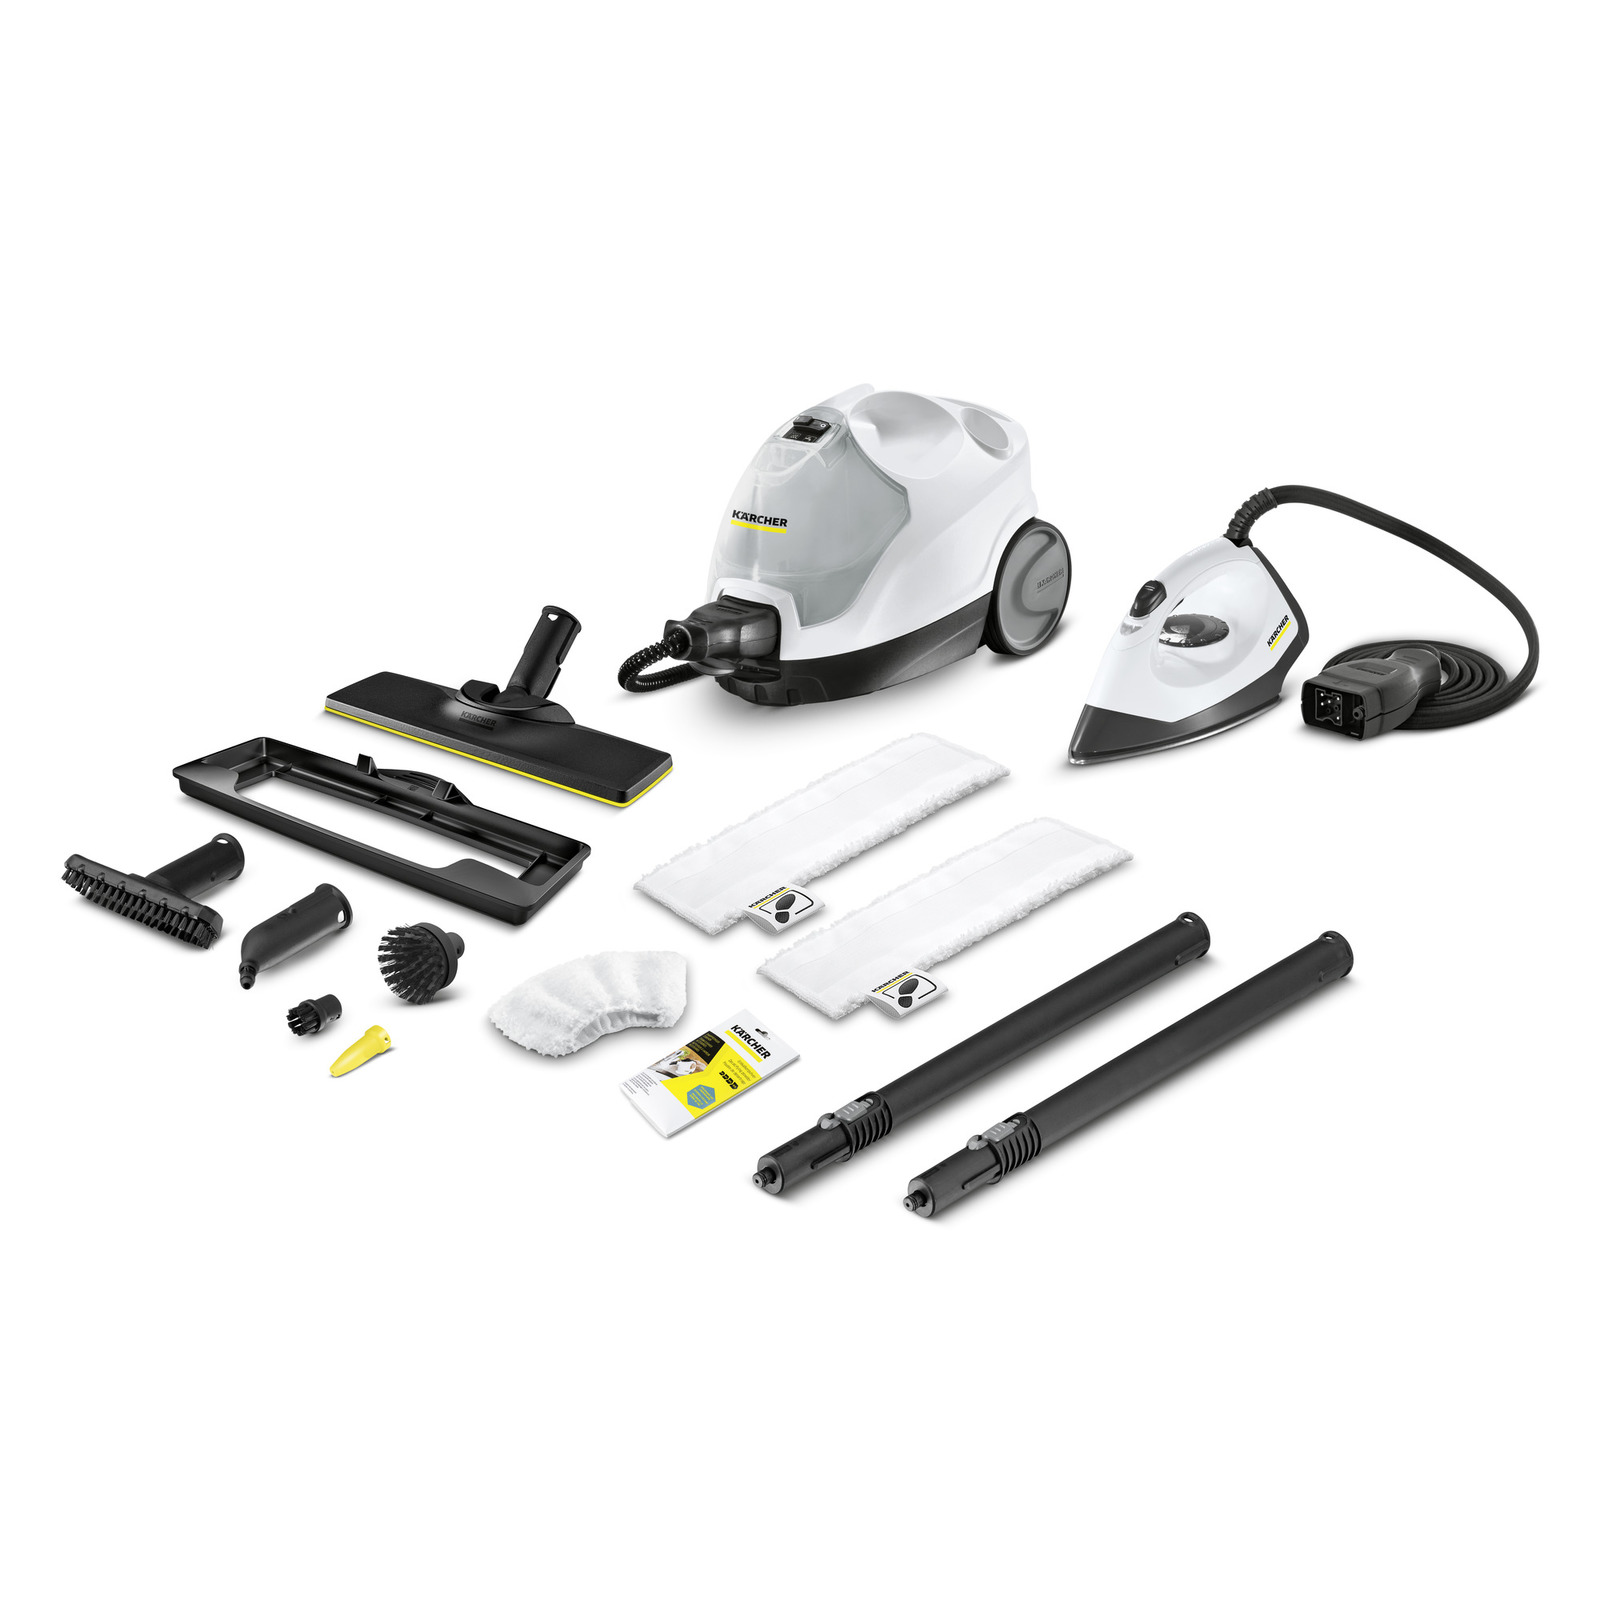 SC 4 EasyFix Premium Iron Kit(white) *EU